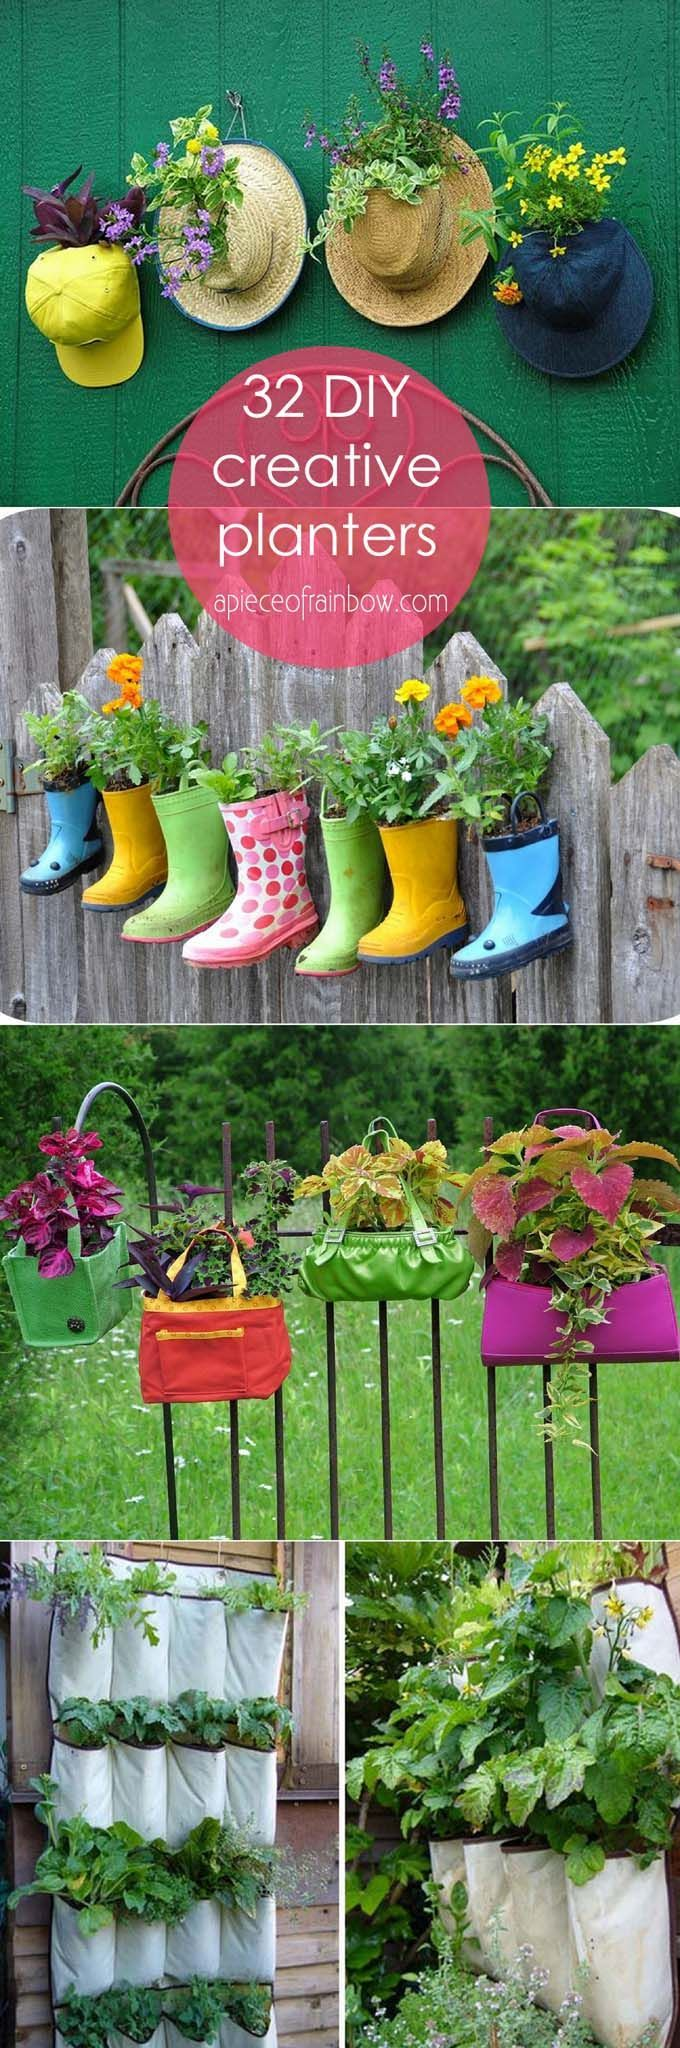 22826 best DIY Gardening Ideas images on Pinterest ...